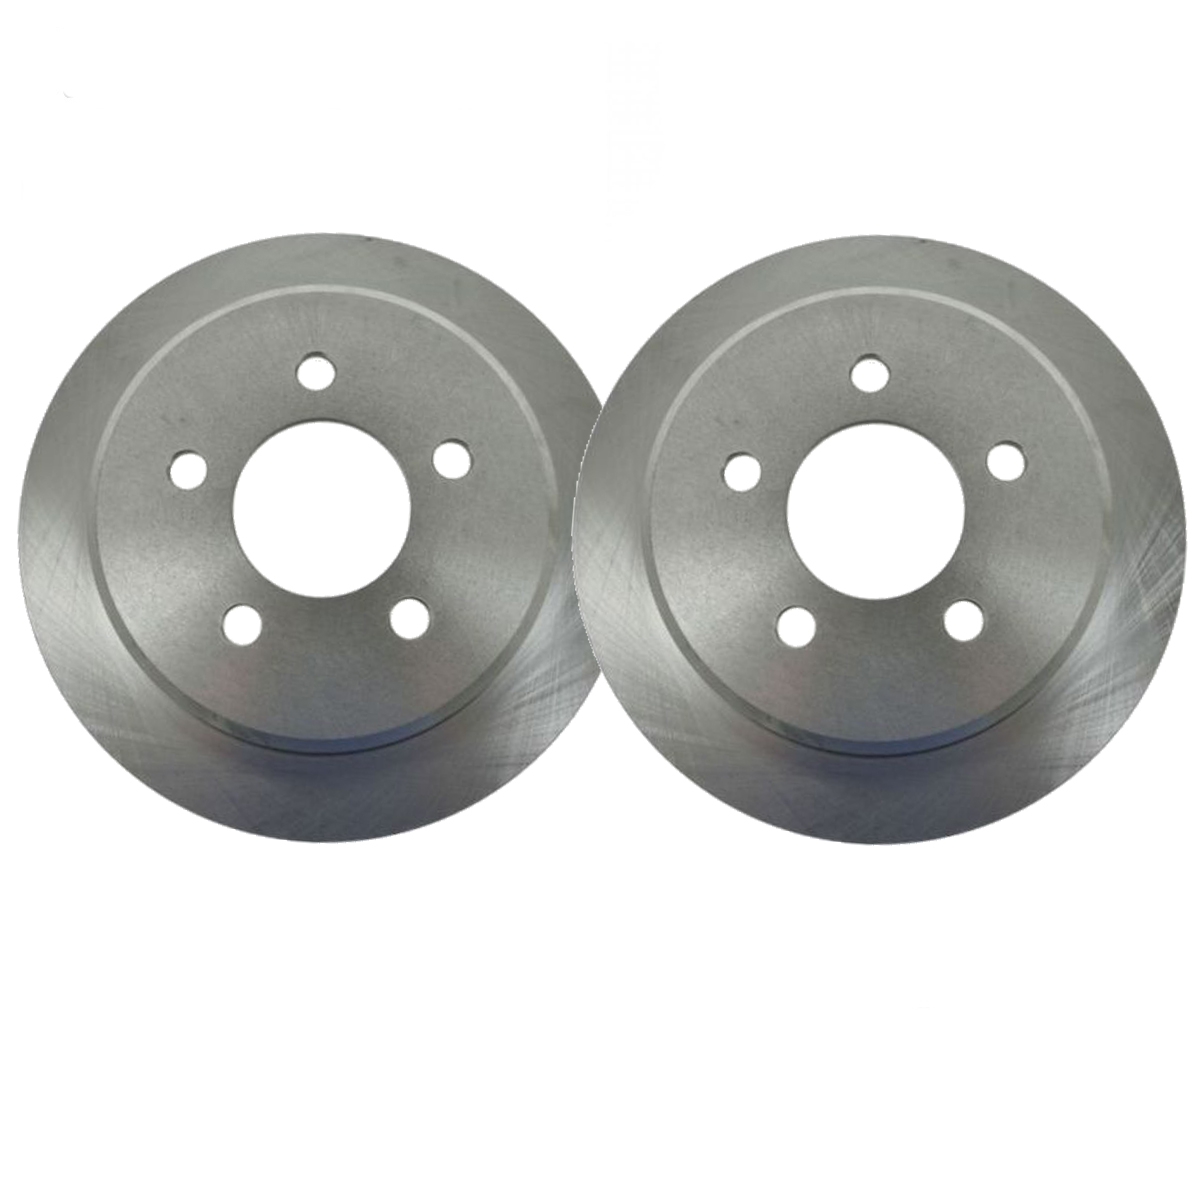 Front Brake Rotors For Ford VS199 Lincoln Mercury Base on Fitment Chart